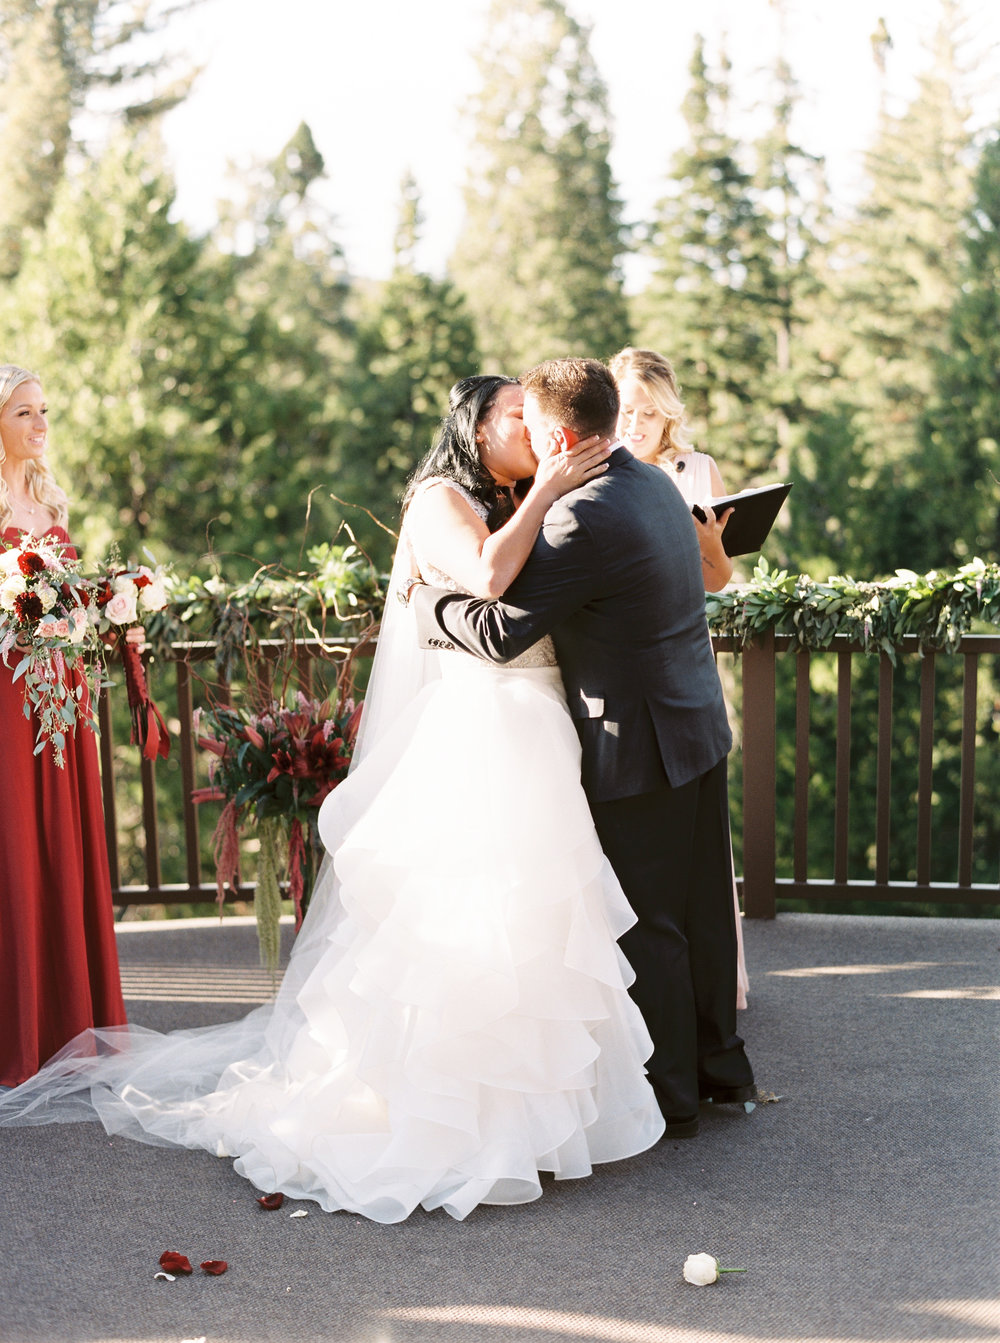 Tenaya-lodge-wedding-at-yosemite-national-park-california-82.jpg